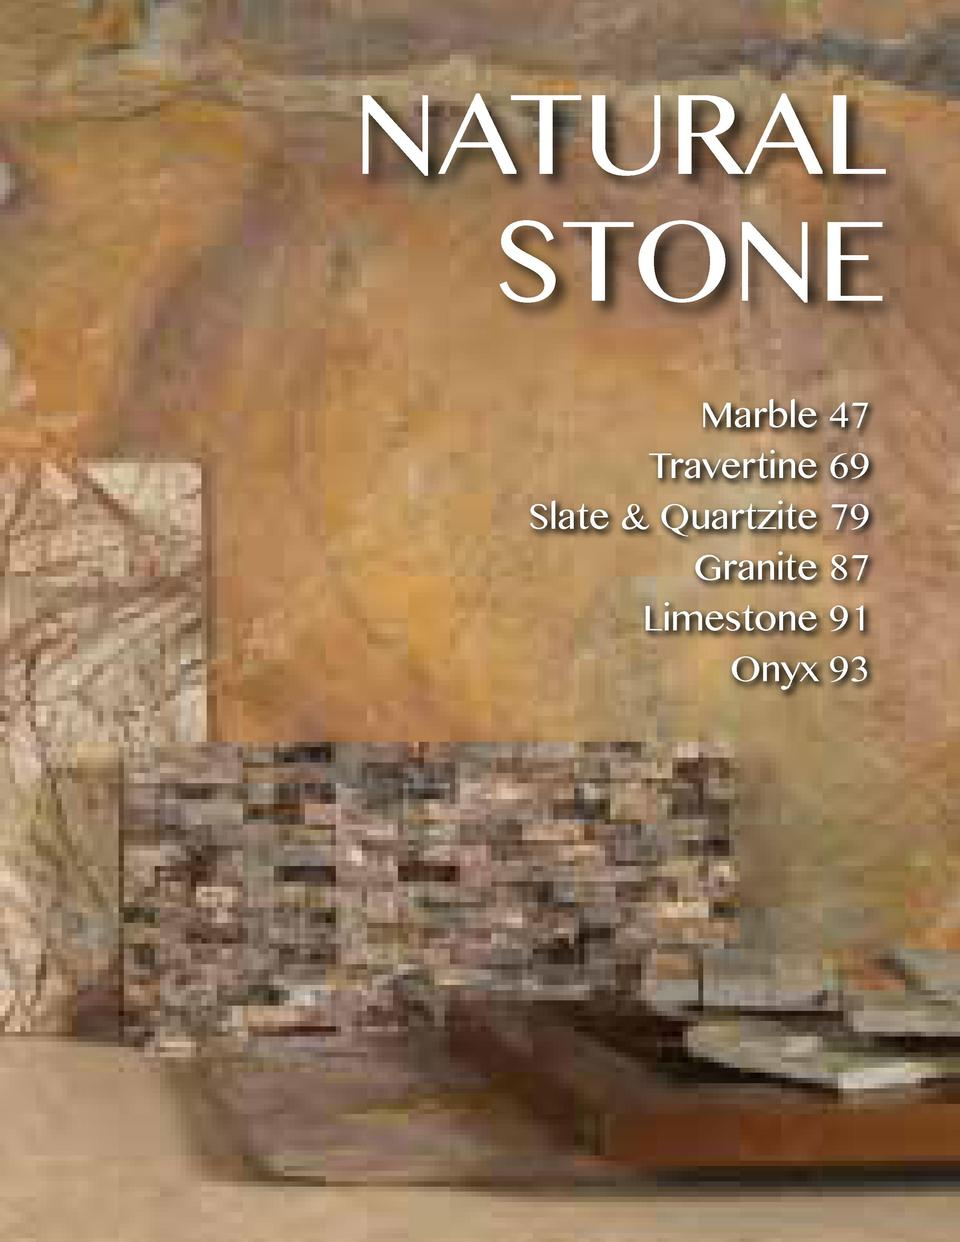 NATURAL STONE Marble 47 Travertine 69 Slate   Quartzite 79 Granite 87 Limestone 91 Onyx 93